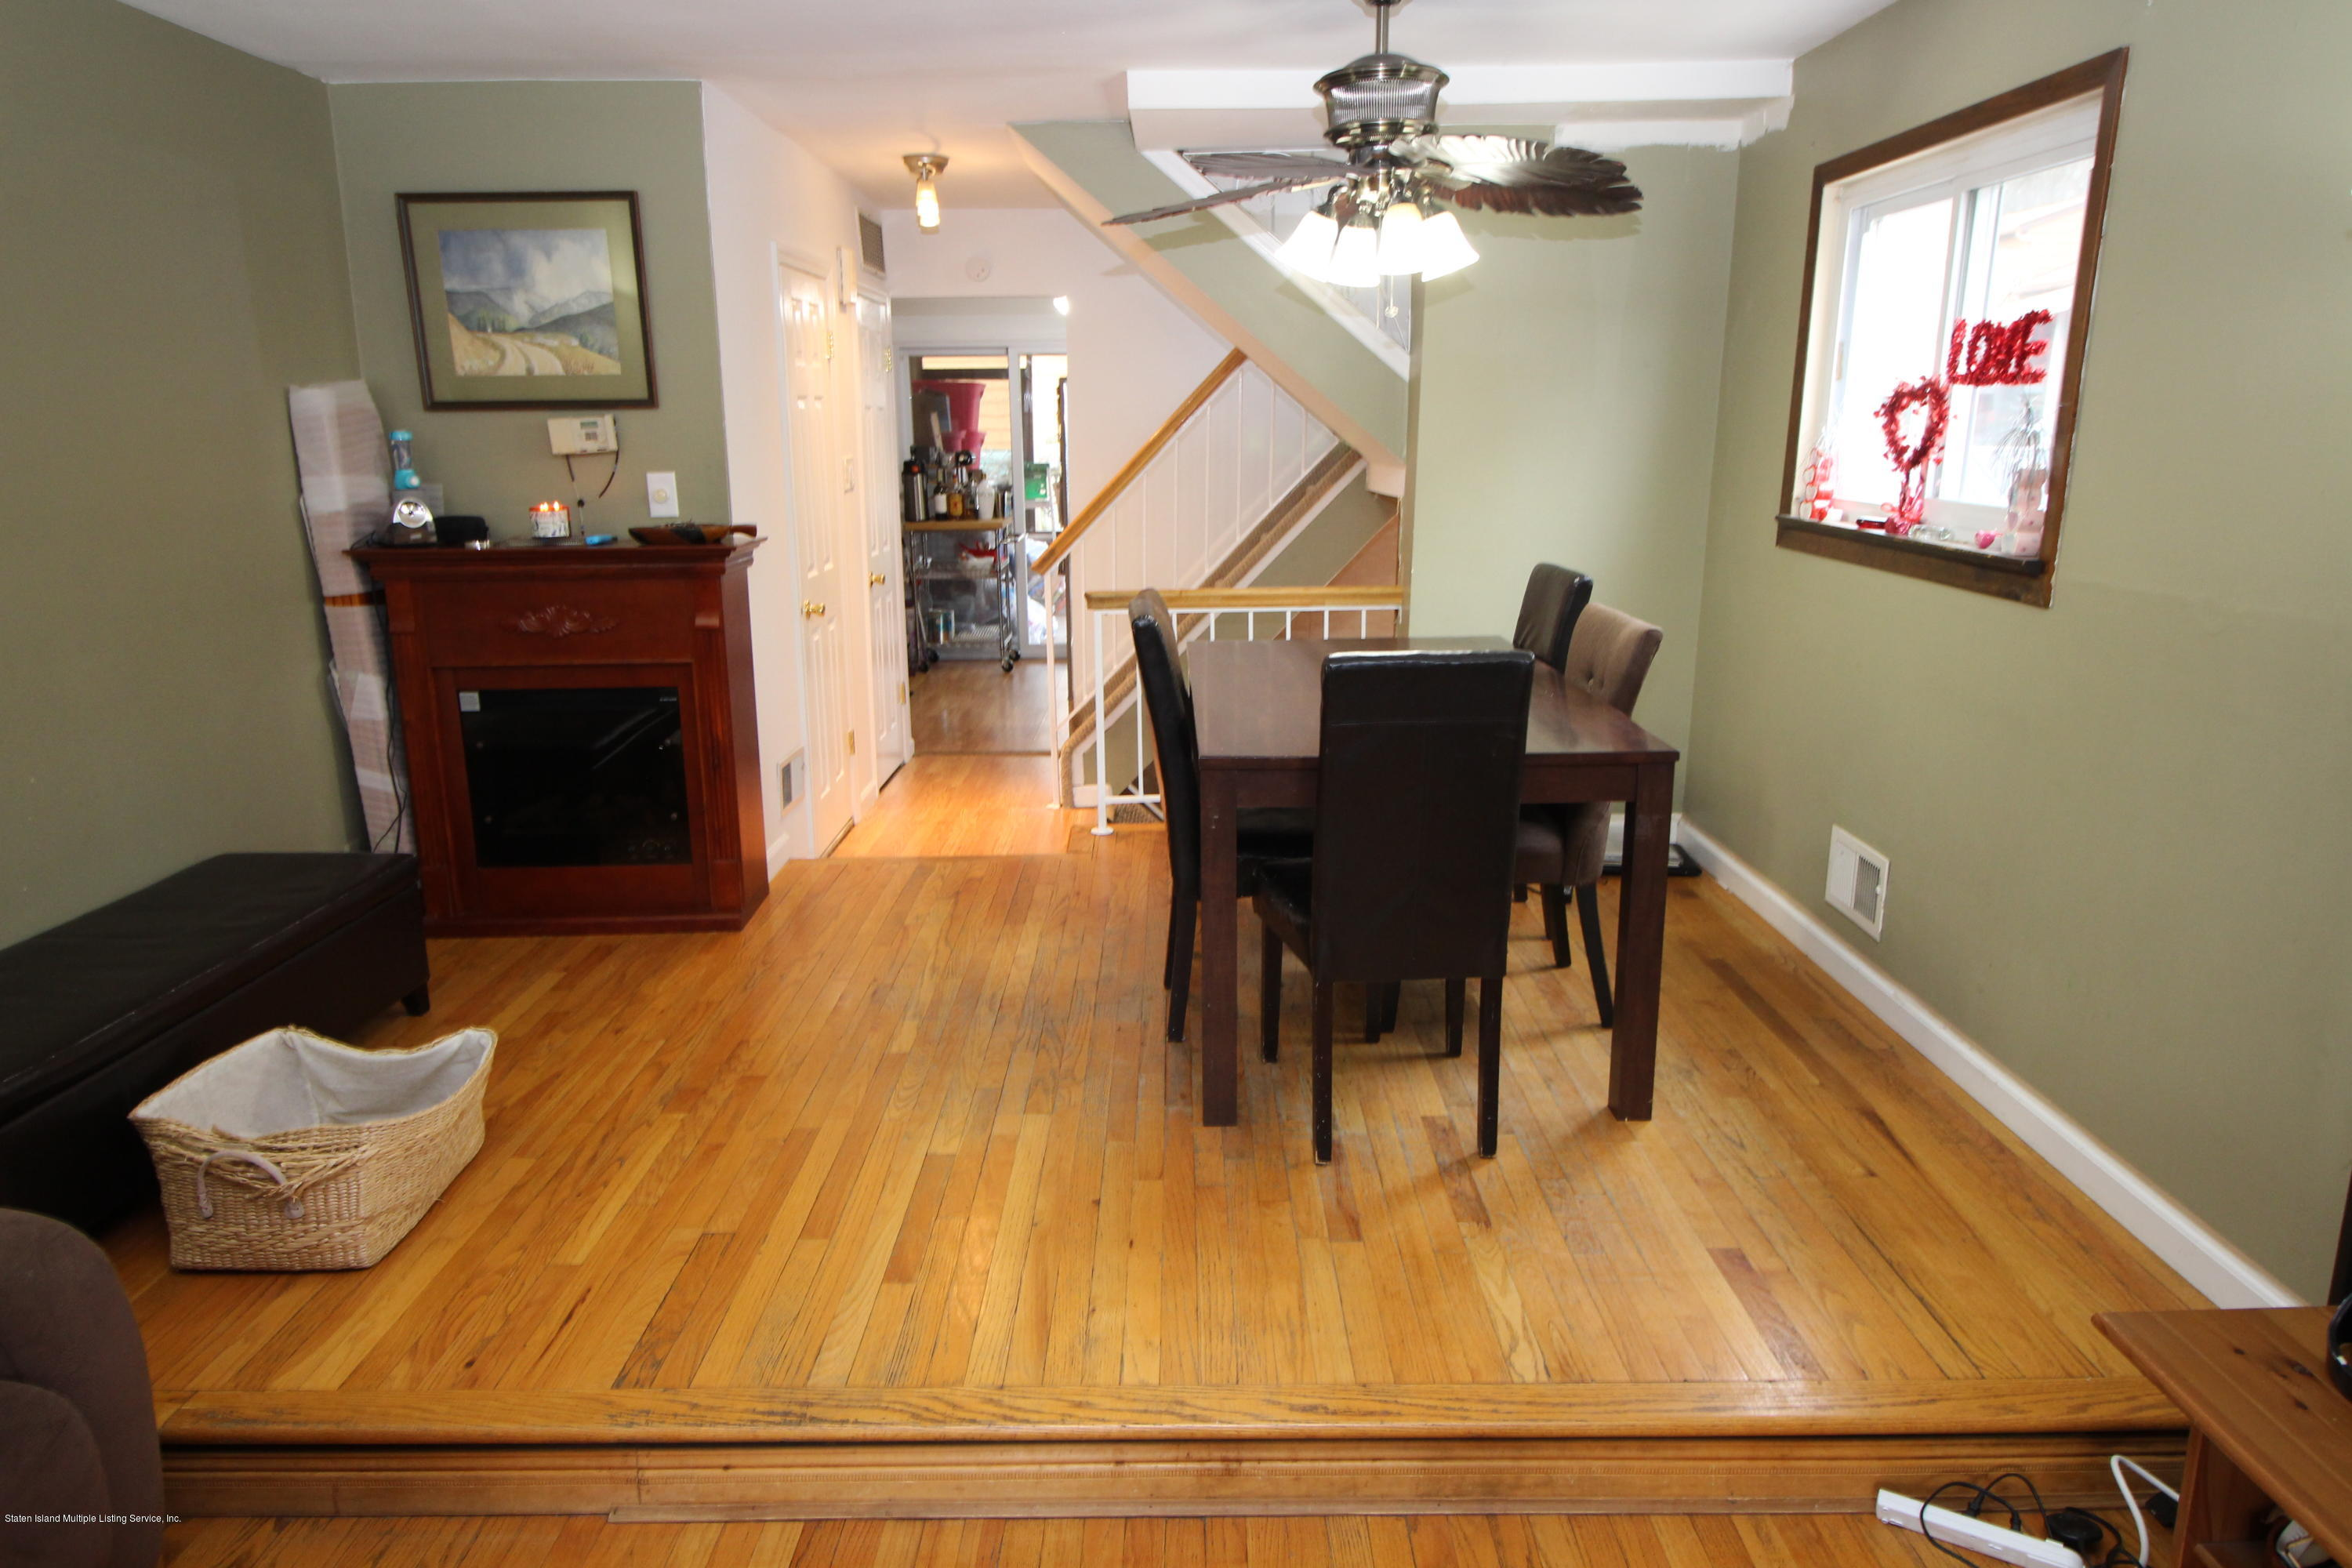 Single Family - Semi-Attached 48 Mulberry Avenue  Staten Island, NY 10314, MLS-1126171-5